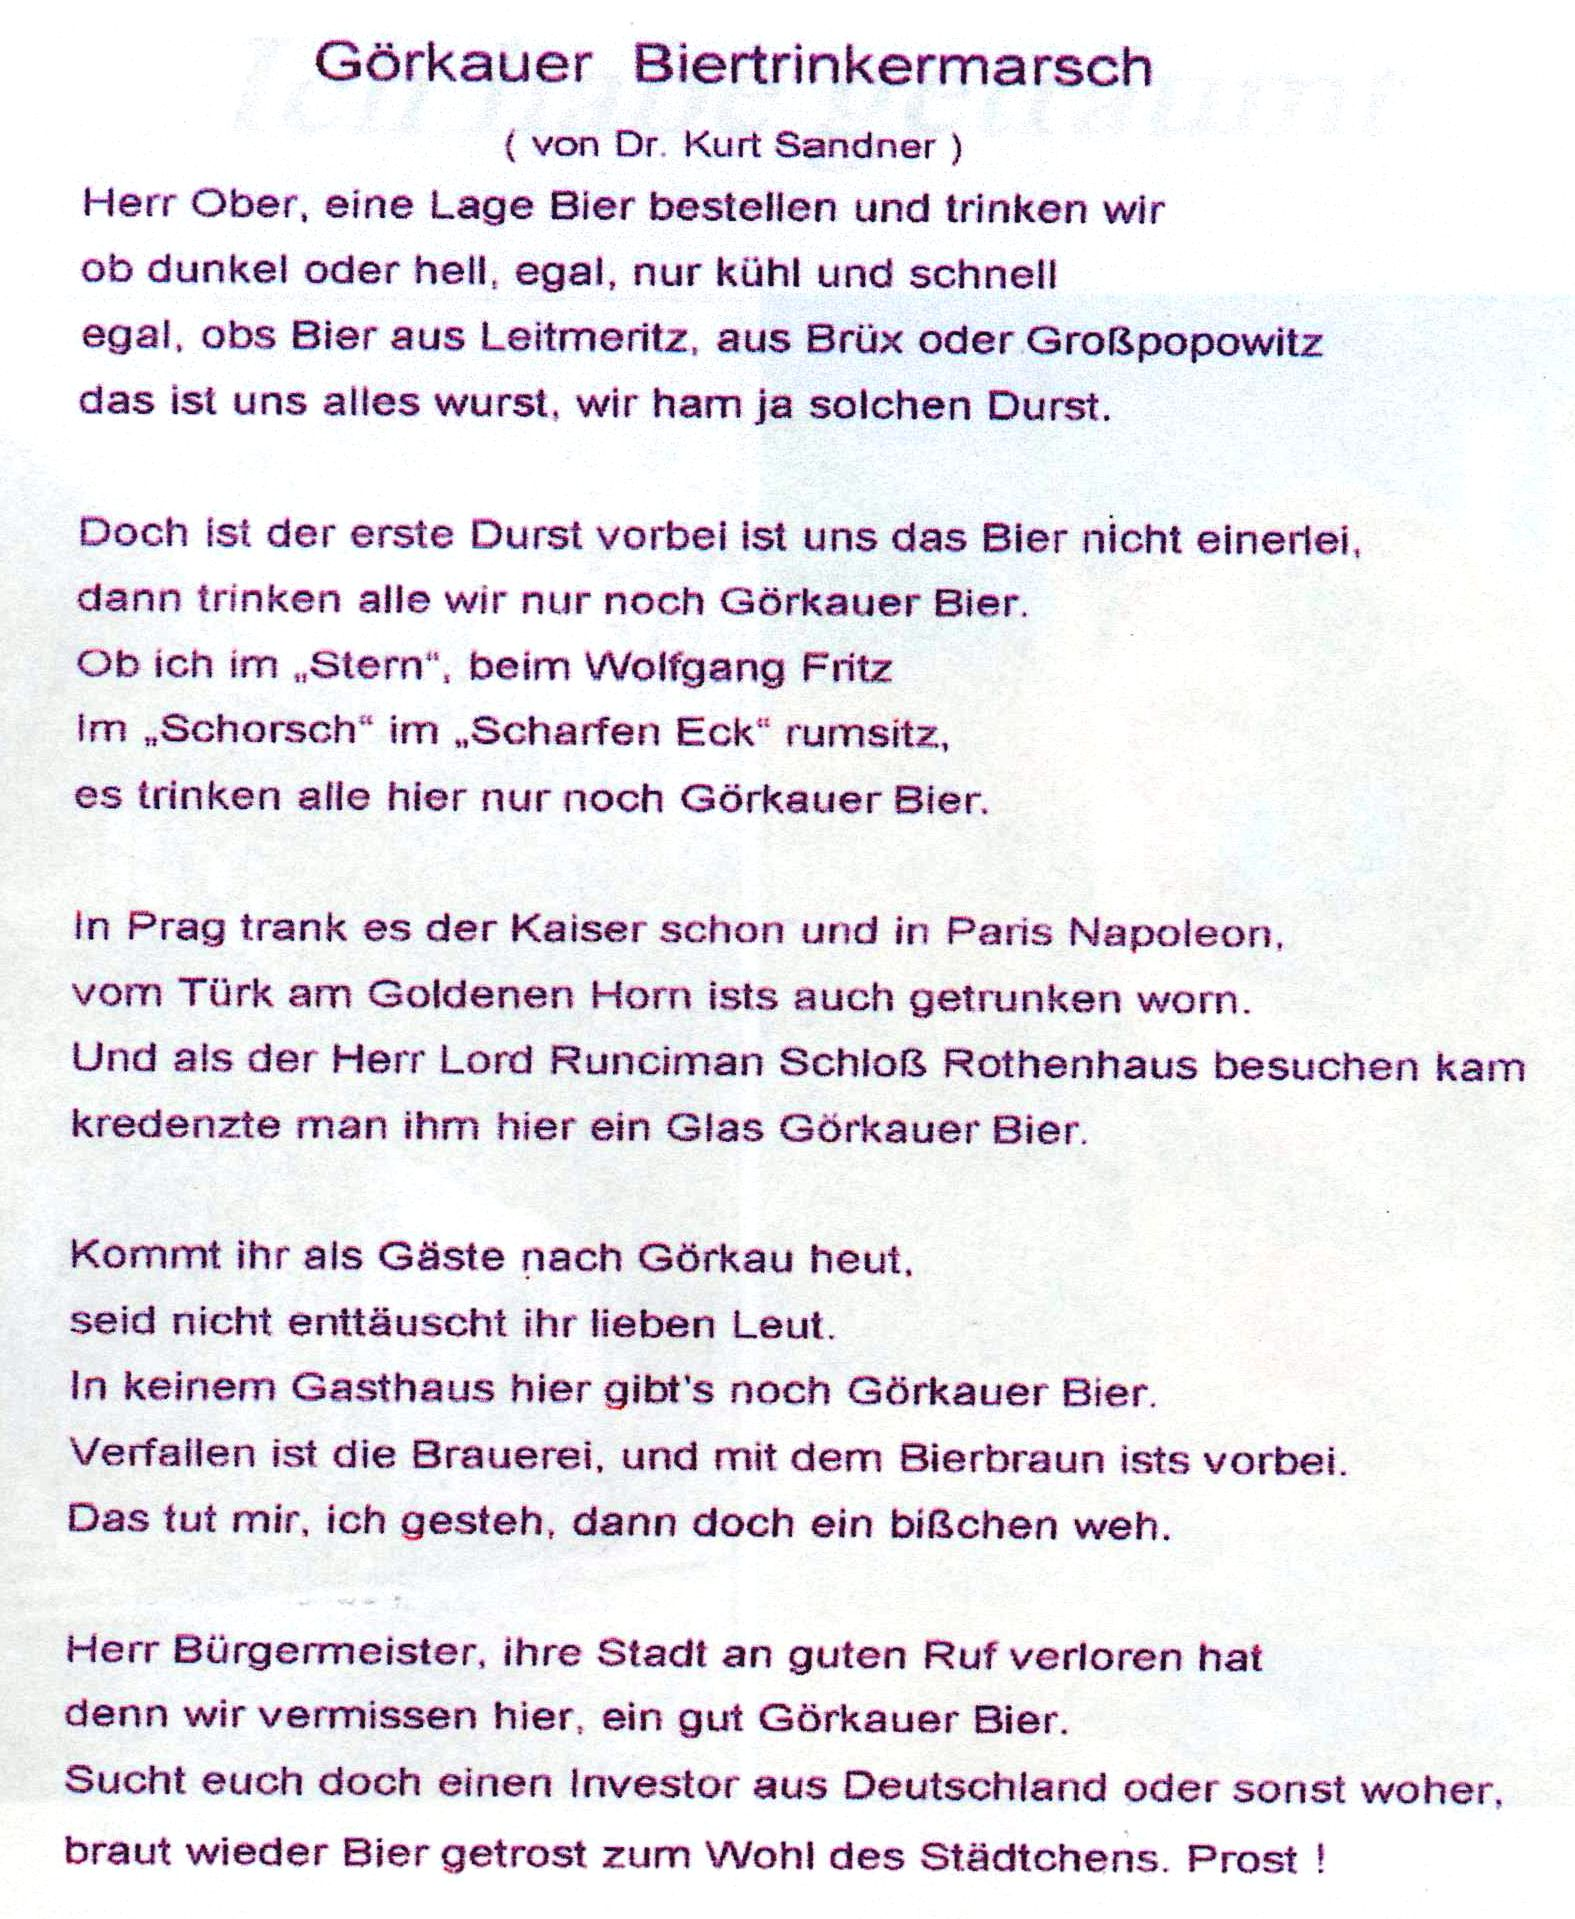 Biertrinkermarsch_Text